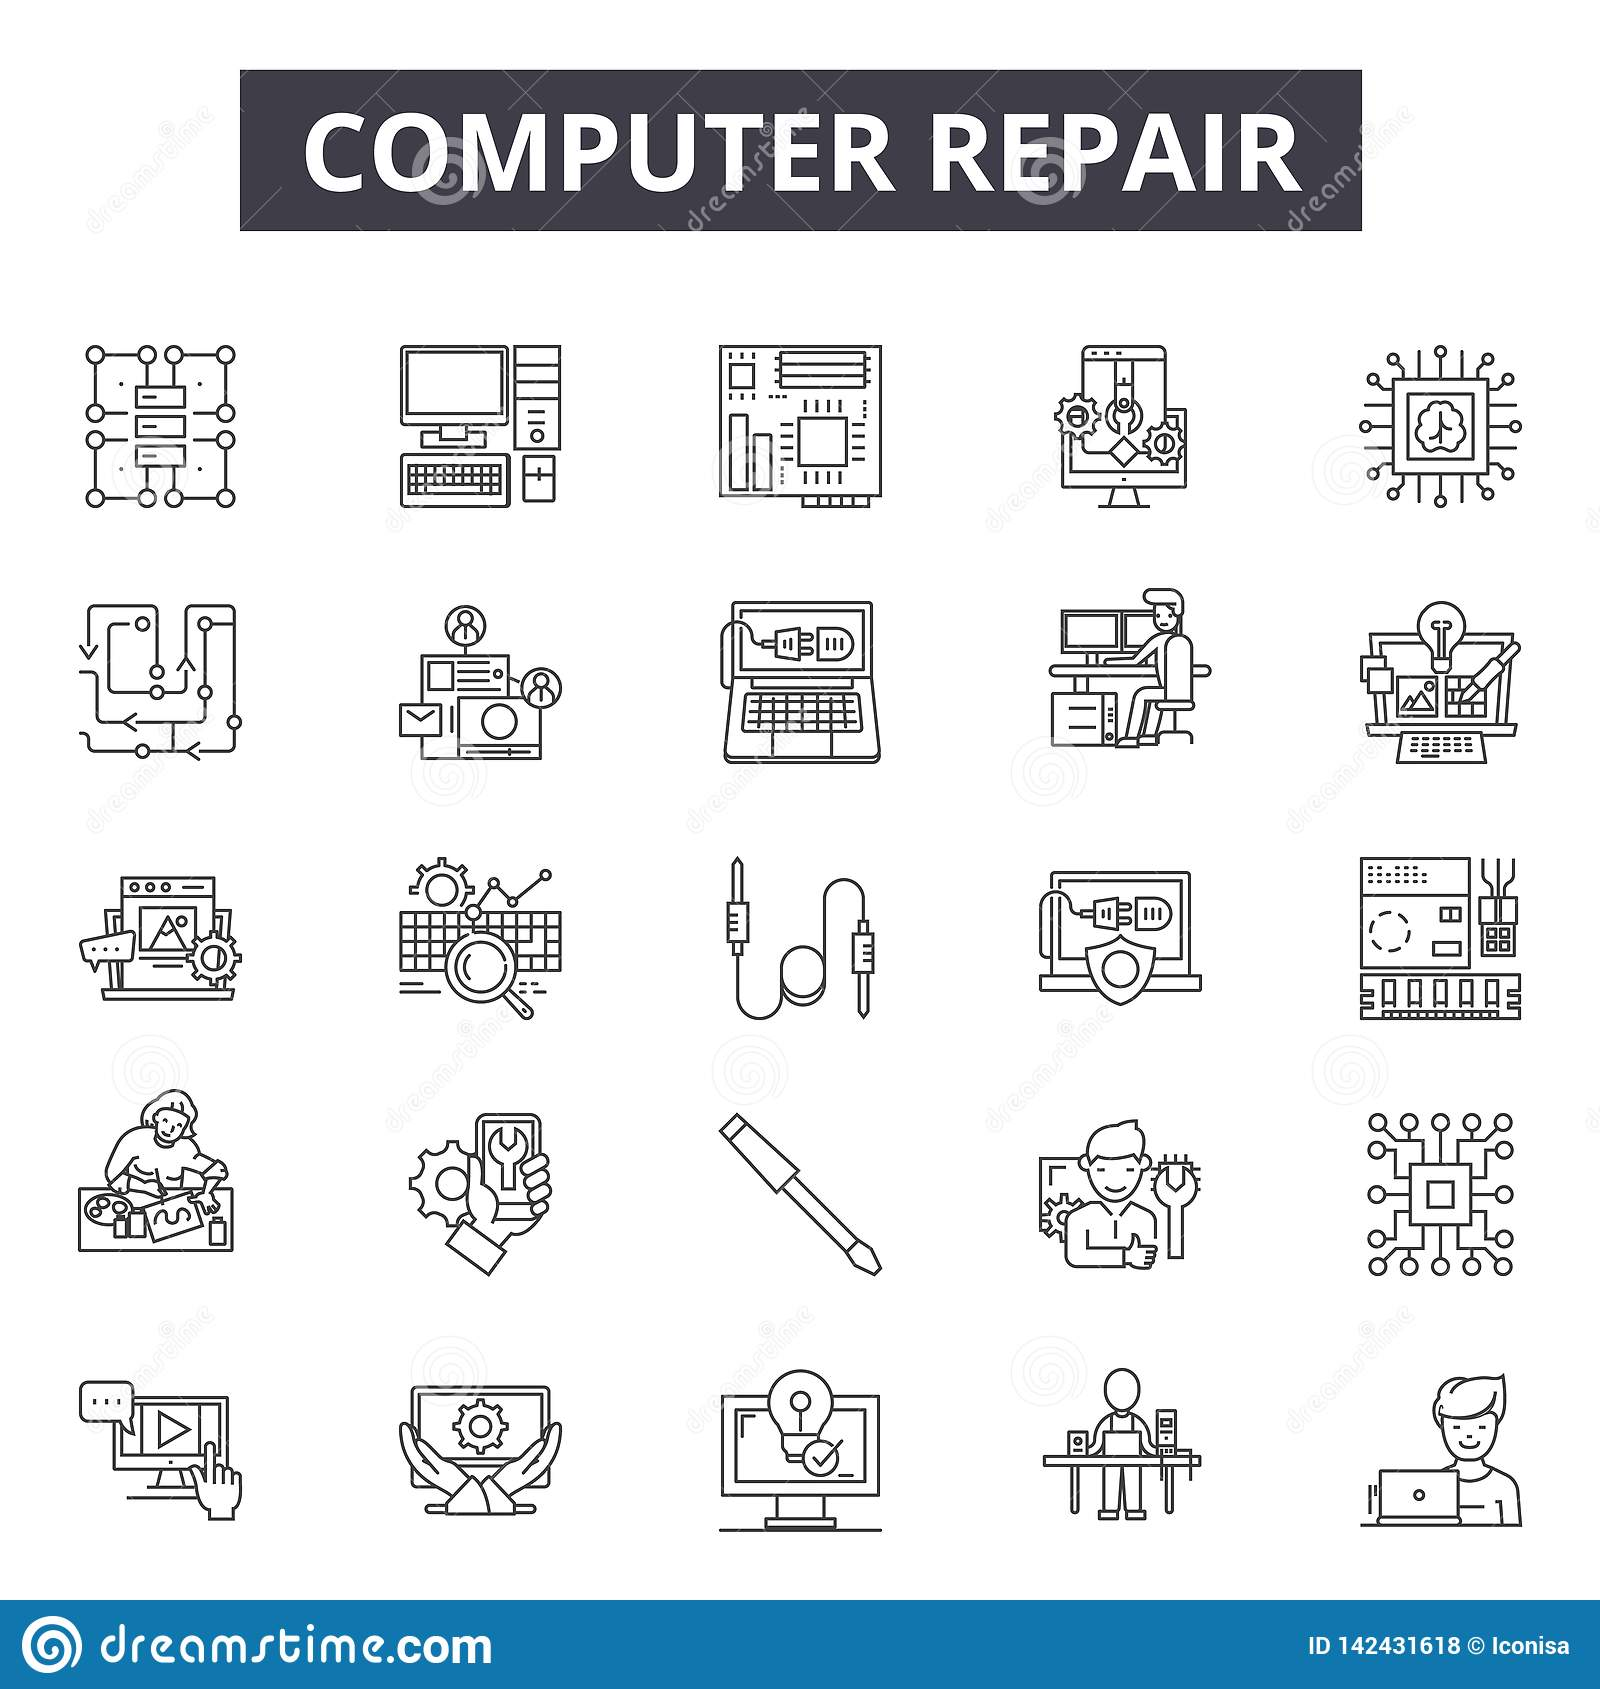 Computer repair line icons for web and mobile design. Editable stroke signs. Computer repair outline concept